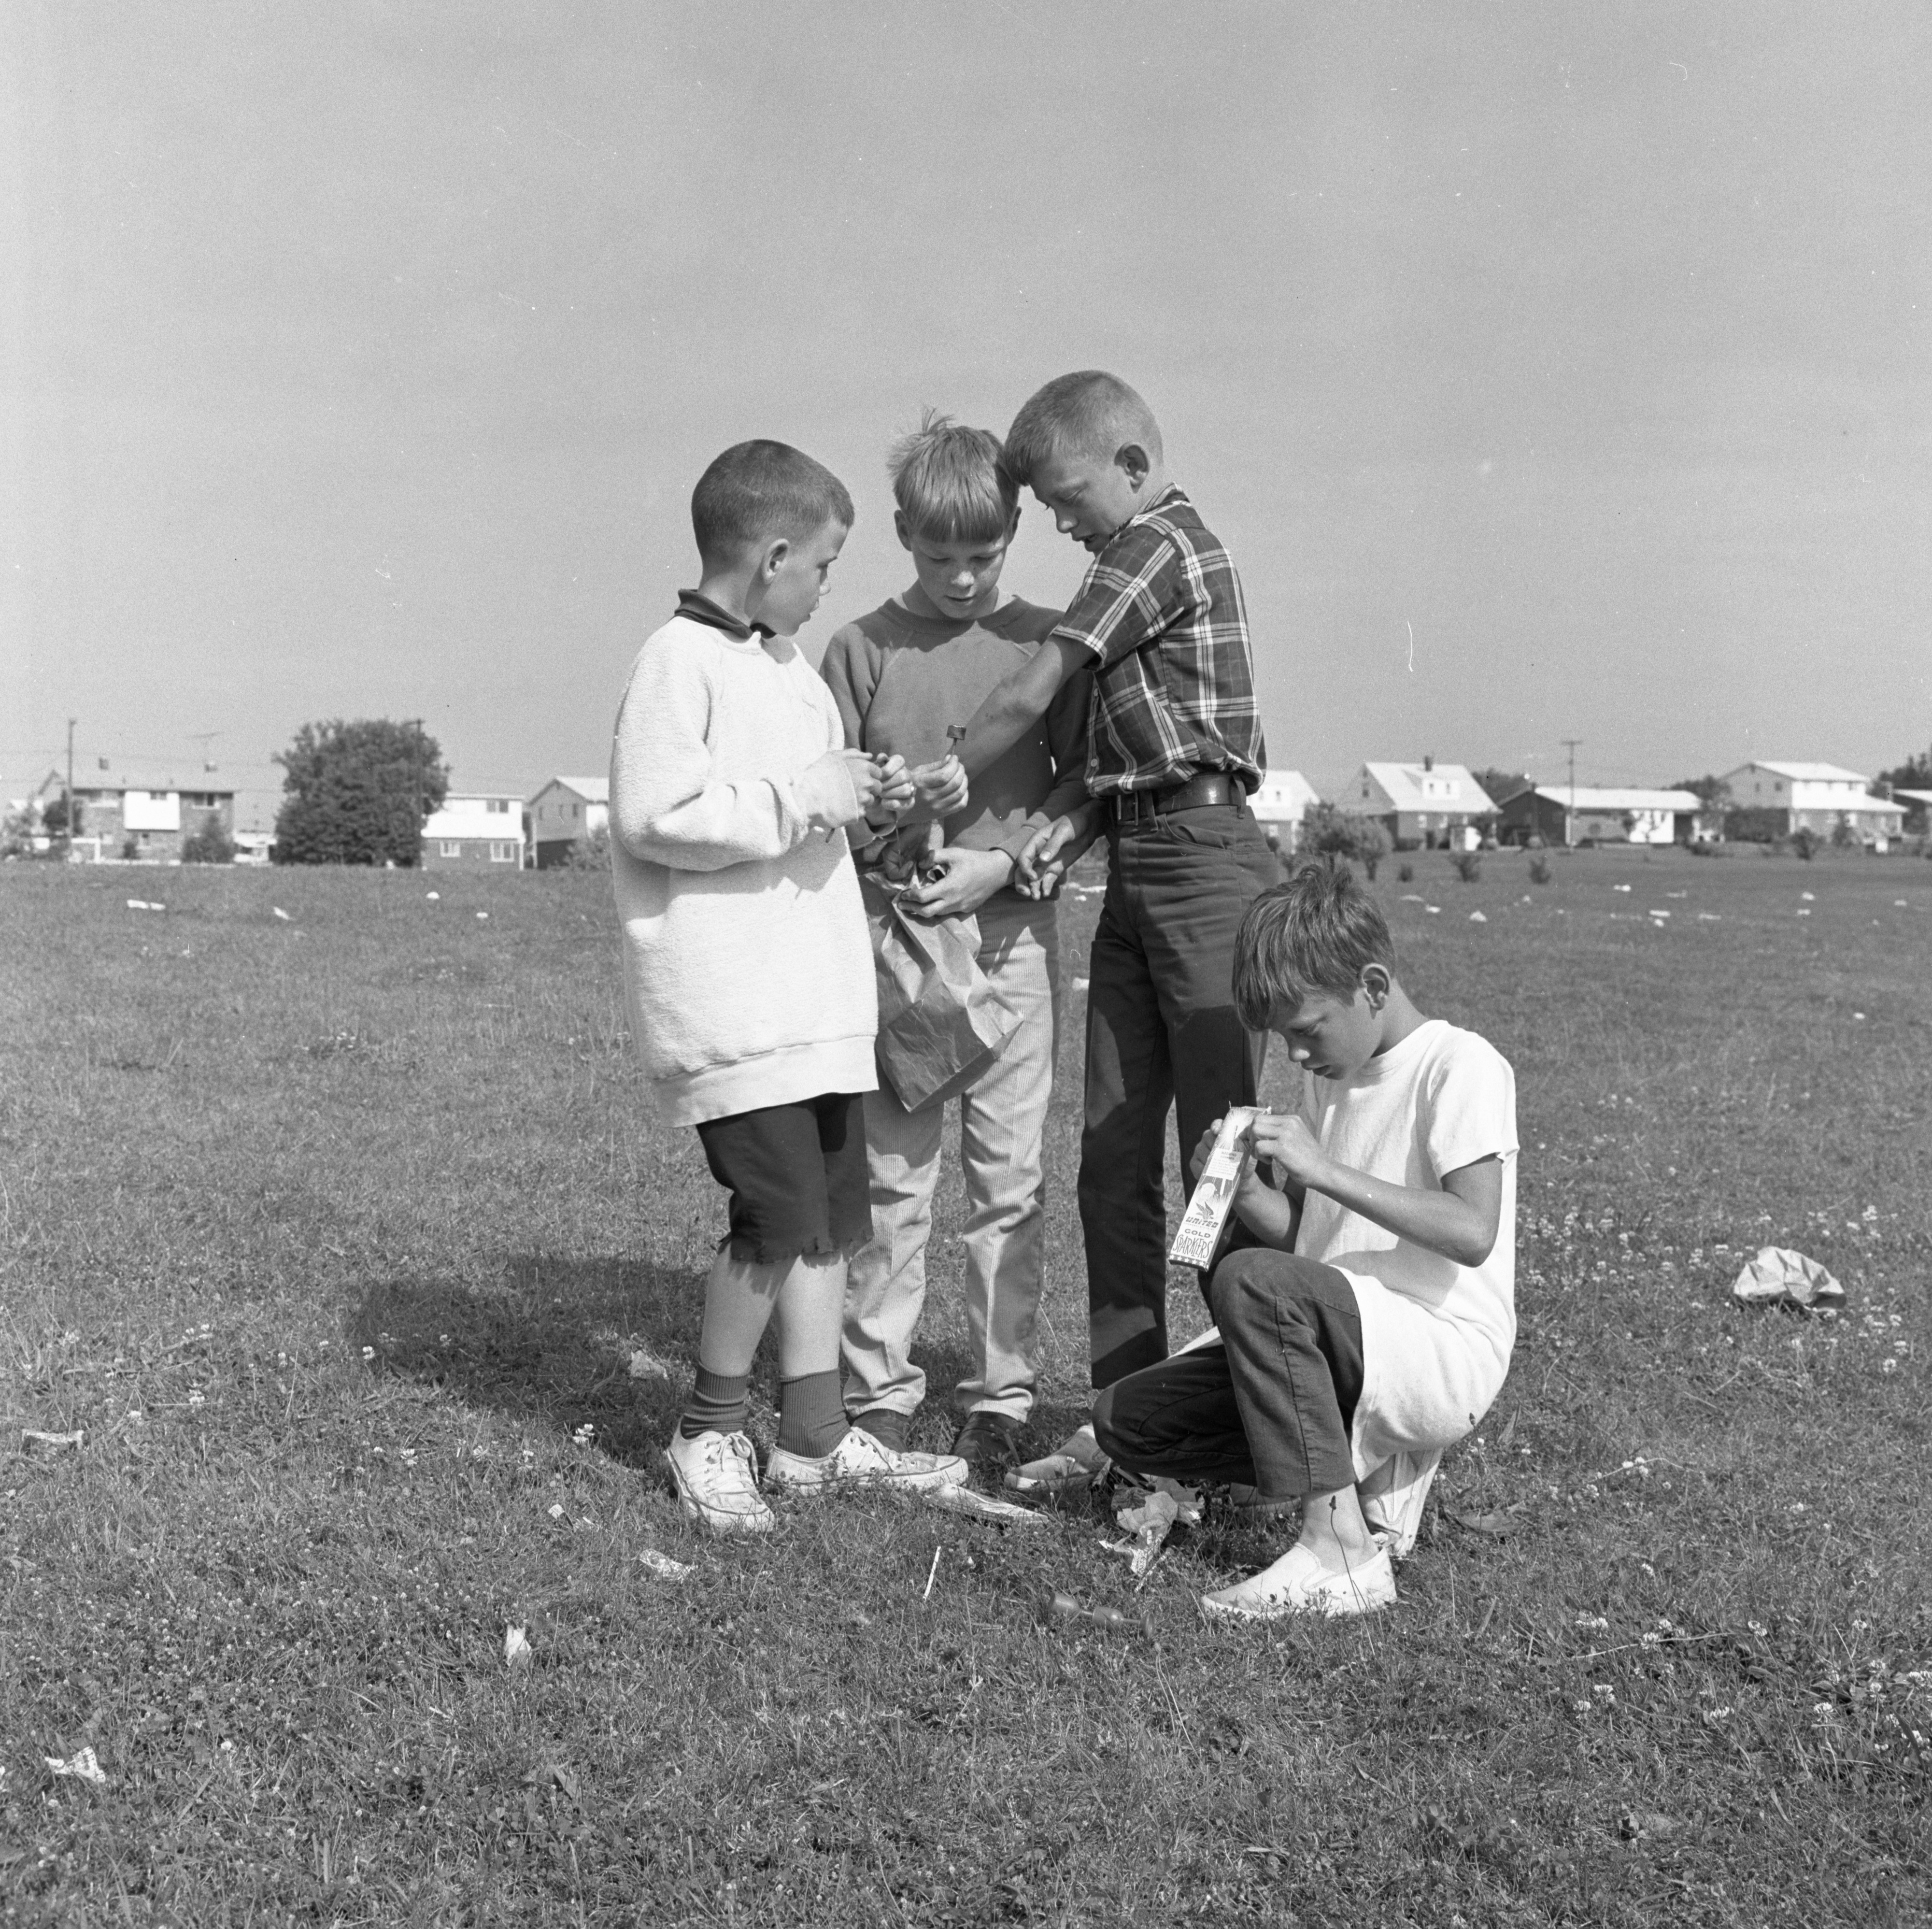 Boys At Buhr Park The Morning After Fireworks Show - July 5, 1967 image